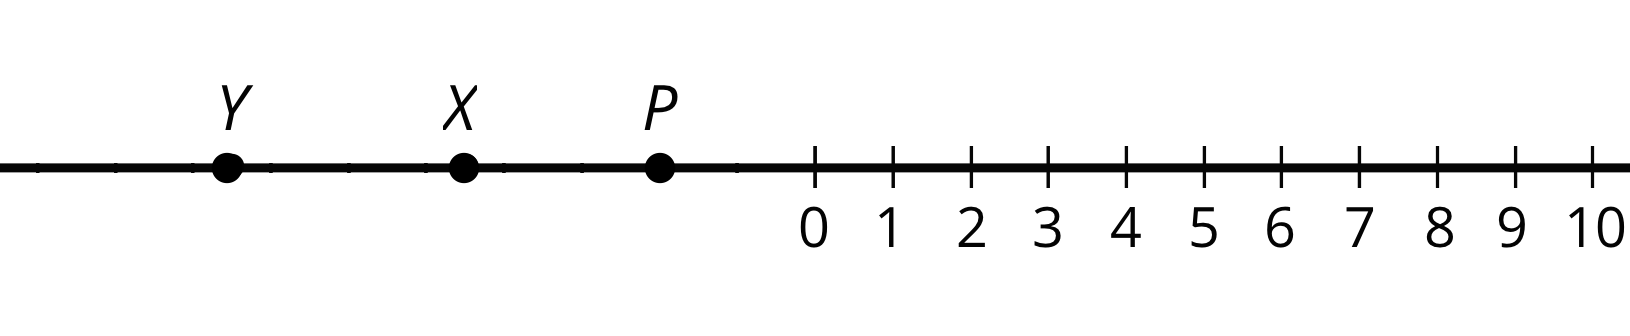 Three points labeled P, X, and Y on a number line. The number 0 is located on the middle of the number line. To the right of 0, the numbers 1 through 10 are indicated on 10 evenly spaced tick marks. To the left of 0, points P, X and Y are plotted. When the number line is folded at 0, point P aligns with 2, point X is halfway between 4 and 5, and point Y is halfway between 7 and 8.